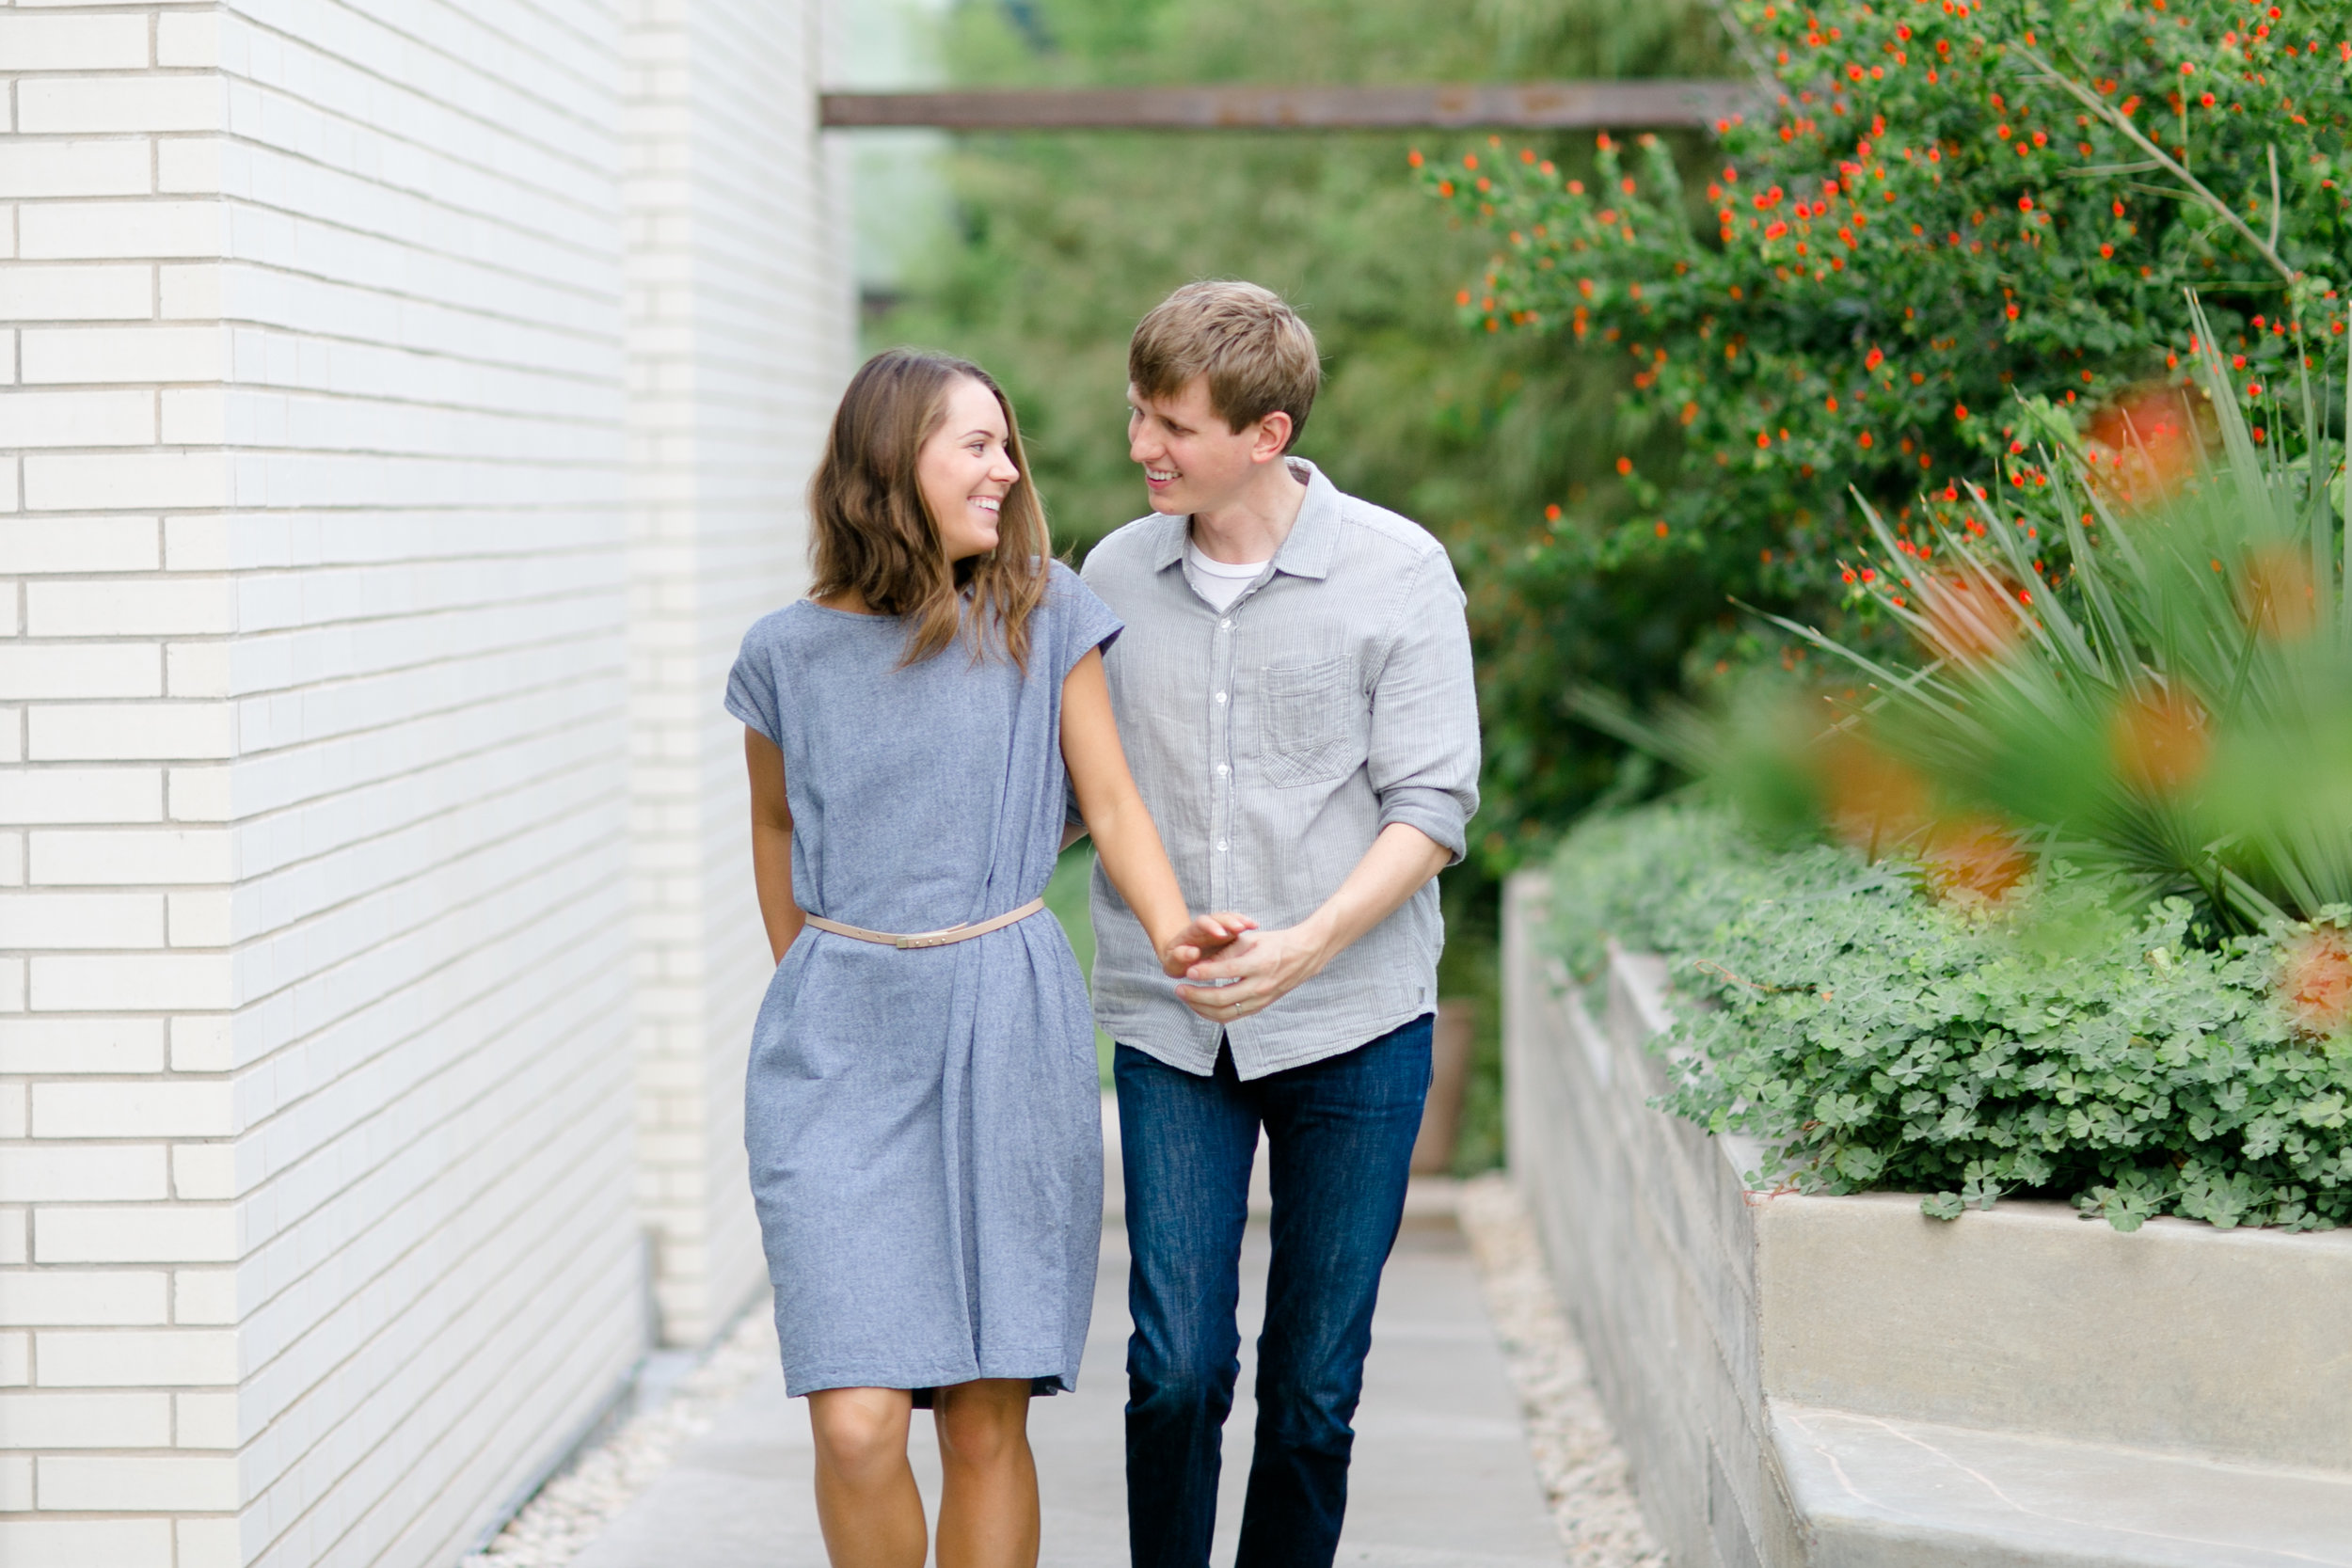 Austin_Texas_Fine_Art_Wedding_Photographer_Kayla_Snell_Photography_South_Congress_Engagement_Session68.jpg